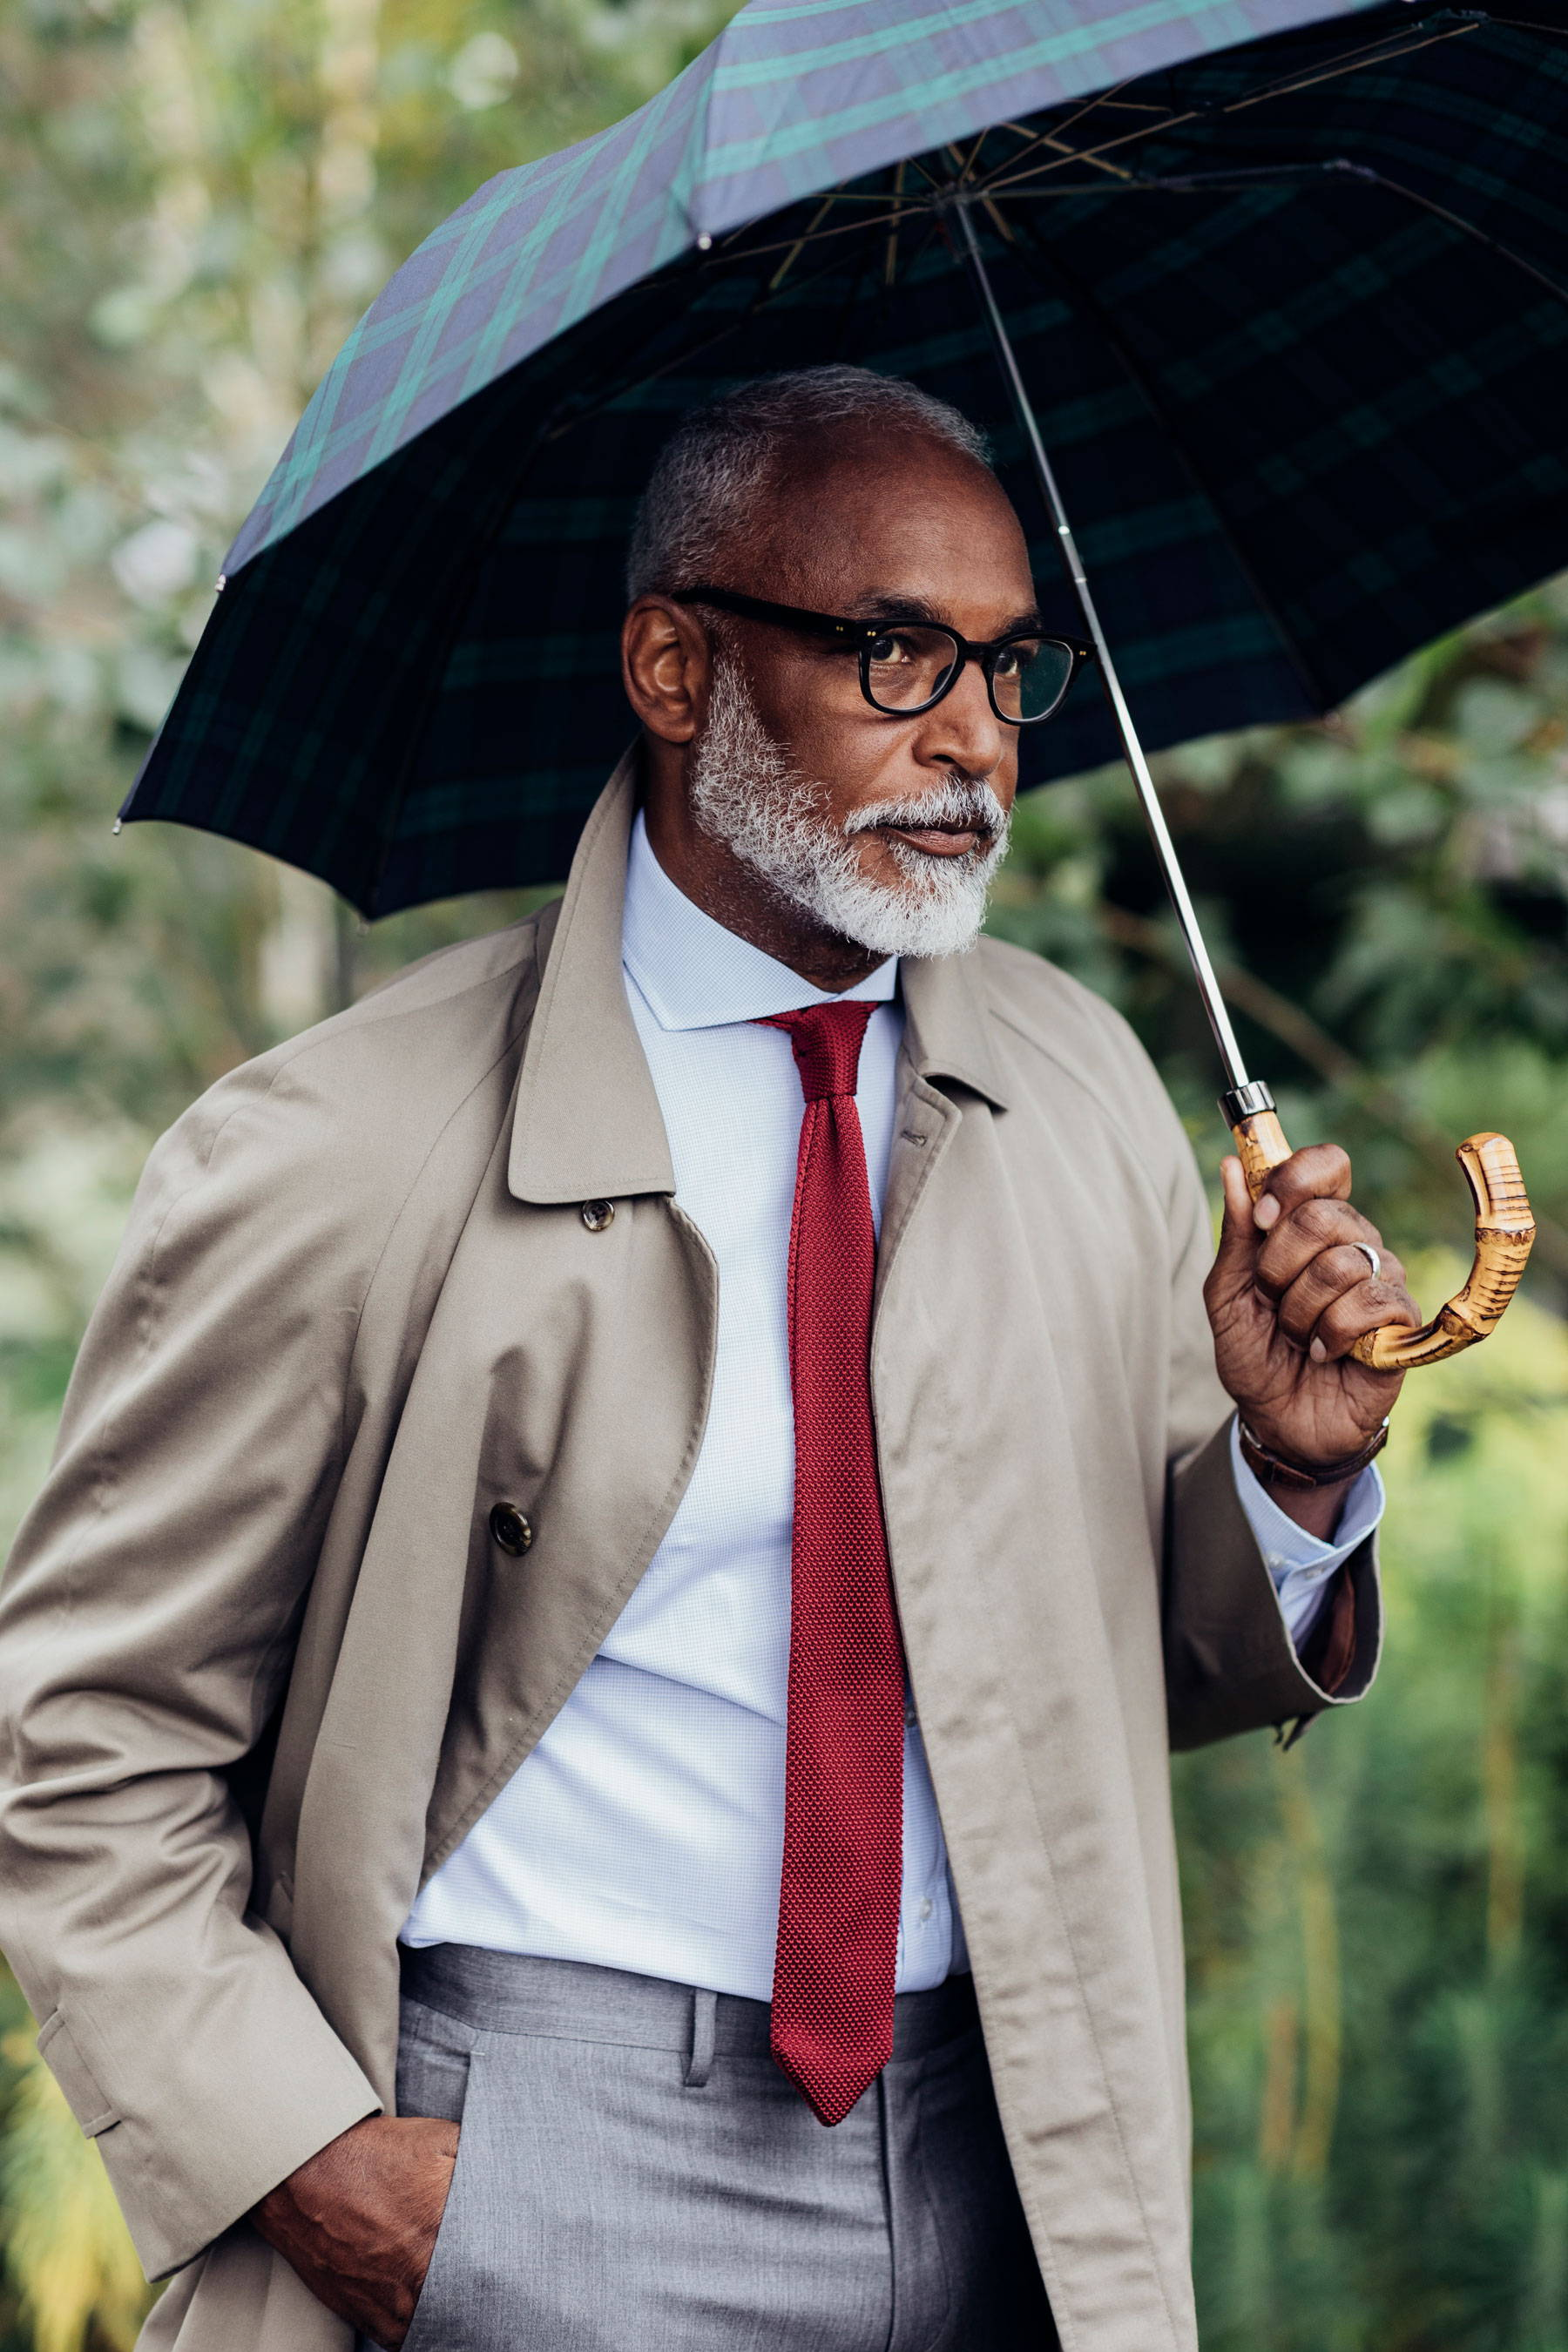 Man with red tie holding umbrella